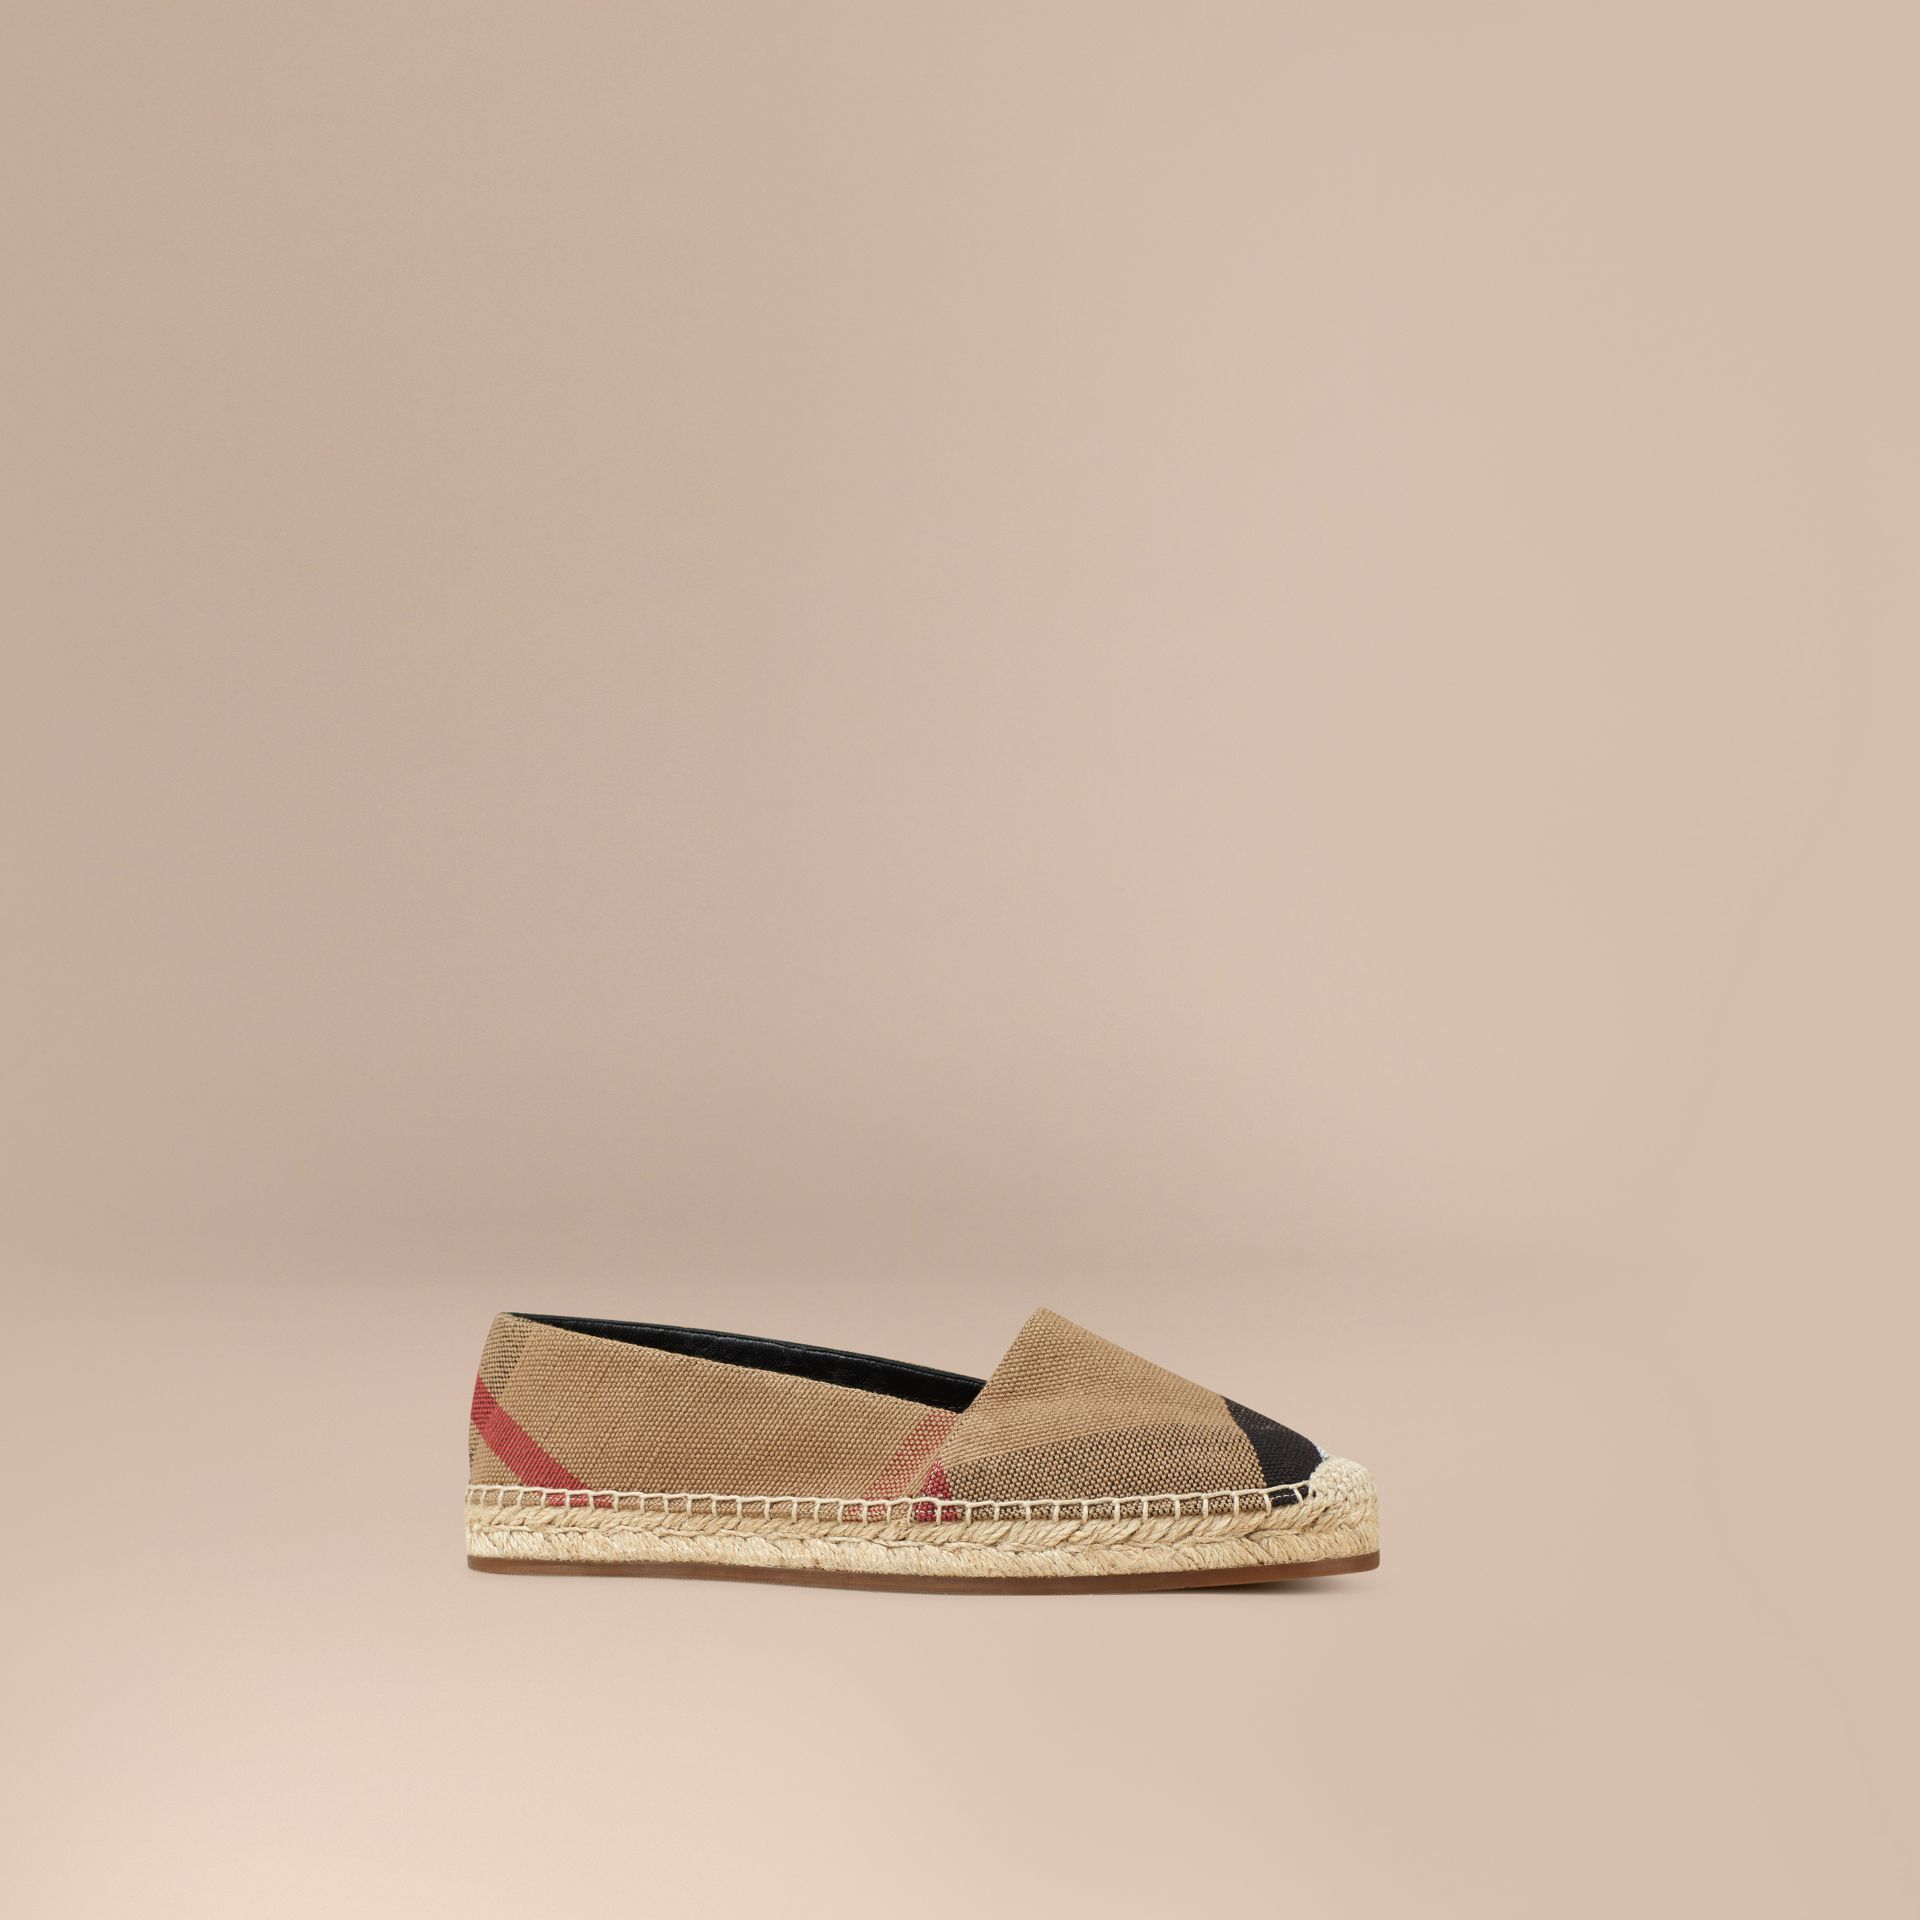 Classic check Check Jute Cotton Espadrilles - gallery image 1